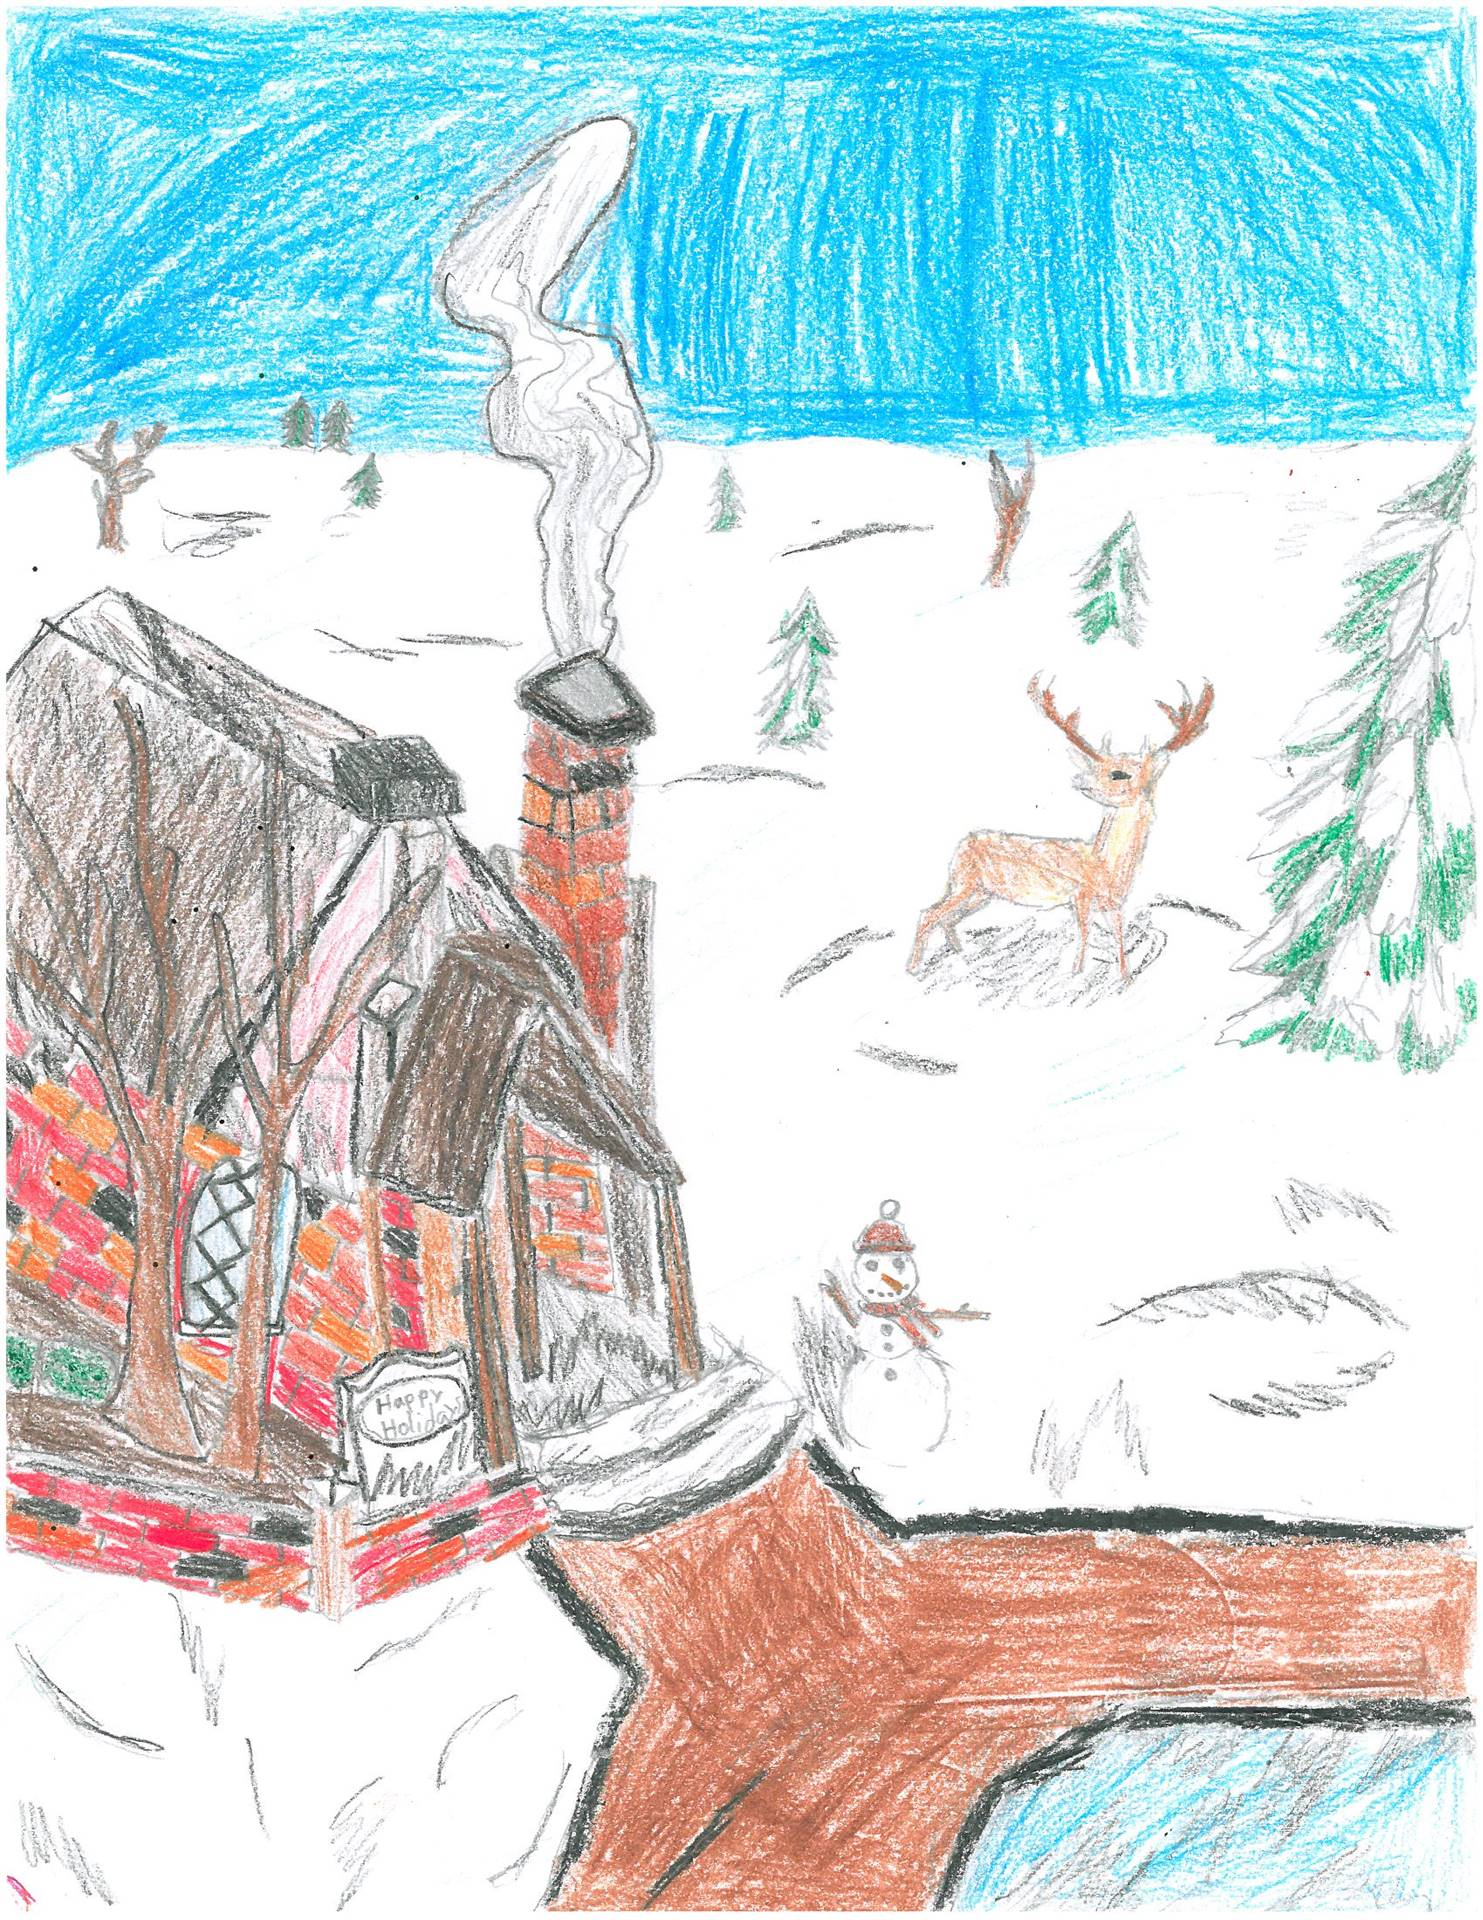 Artwork of winter scene with home and deer for holiday card contest